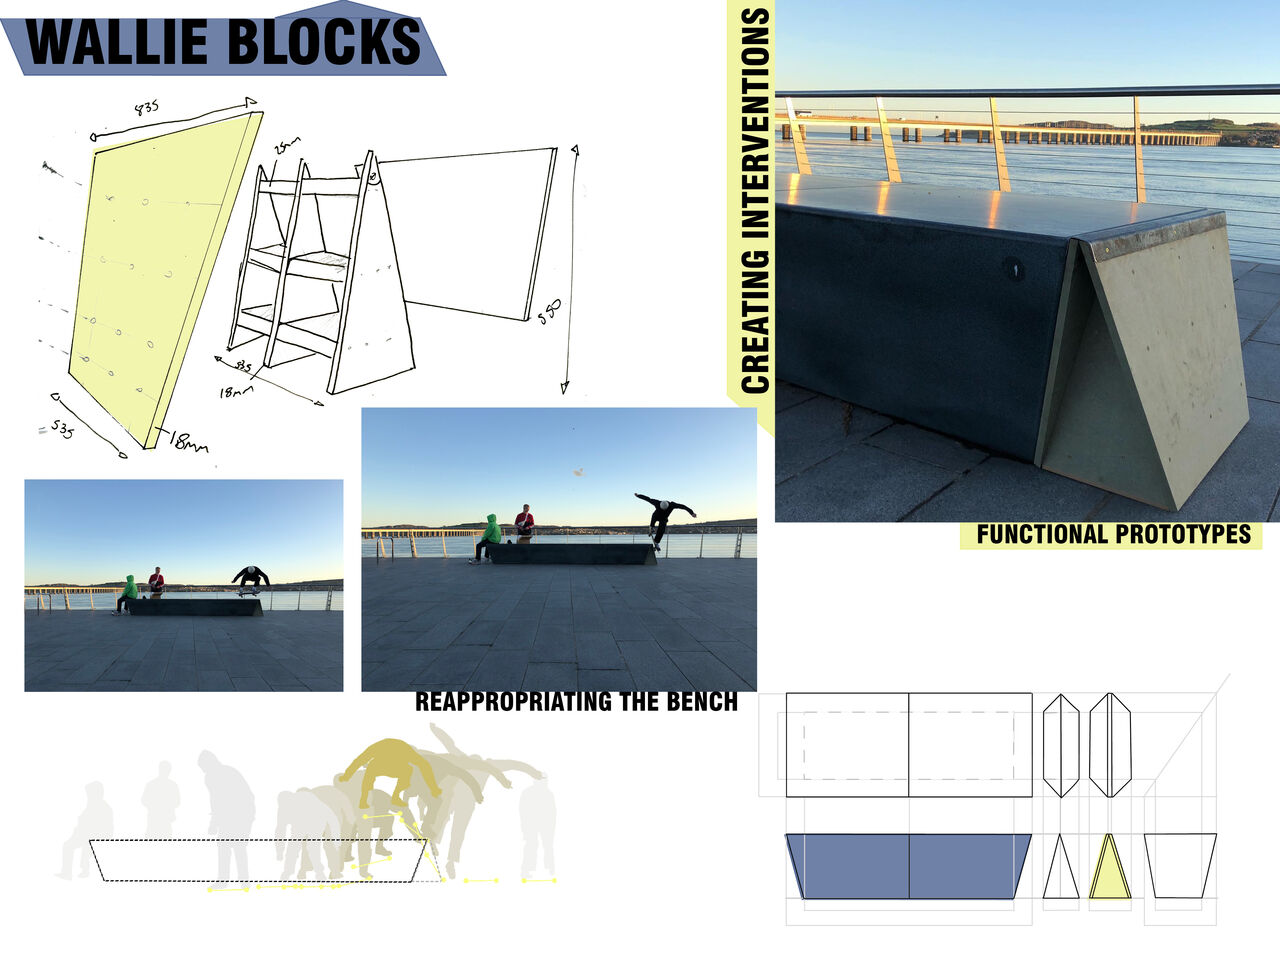 Plans and designs for skateboarding structures that can slot into existing benches around the museum.